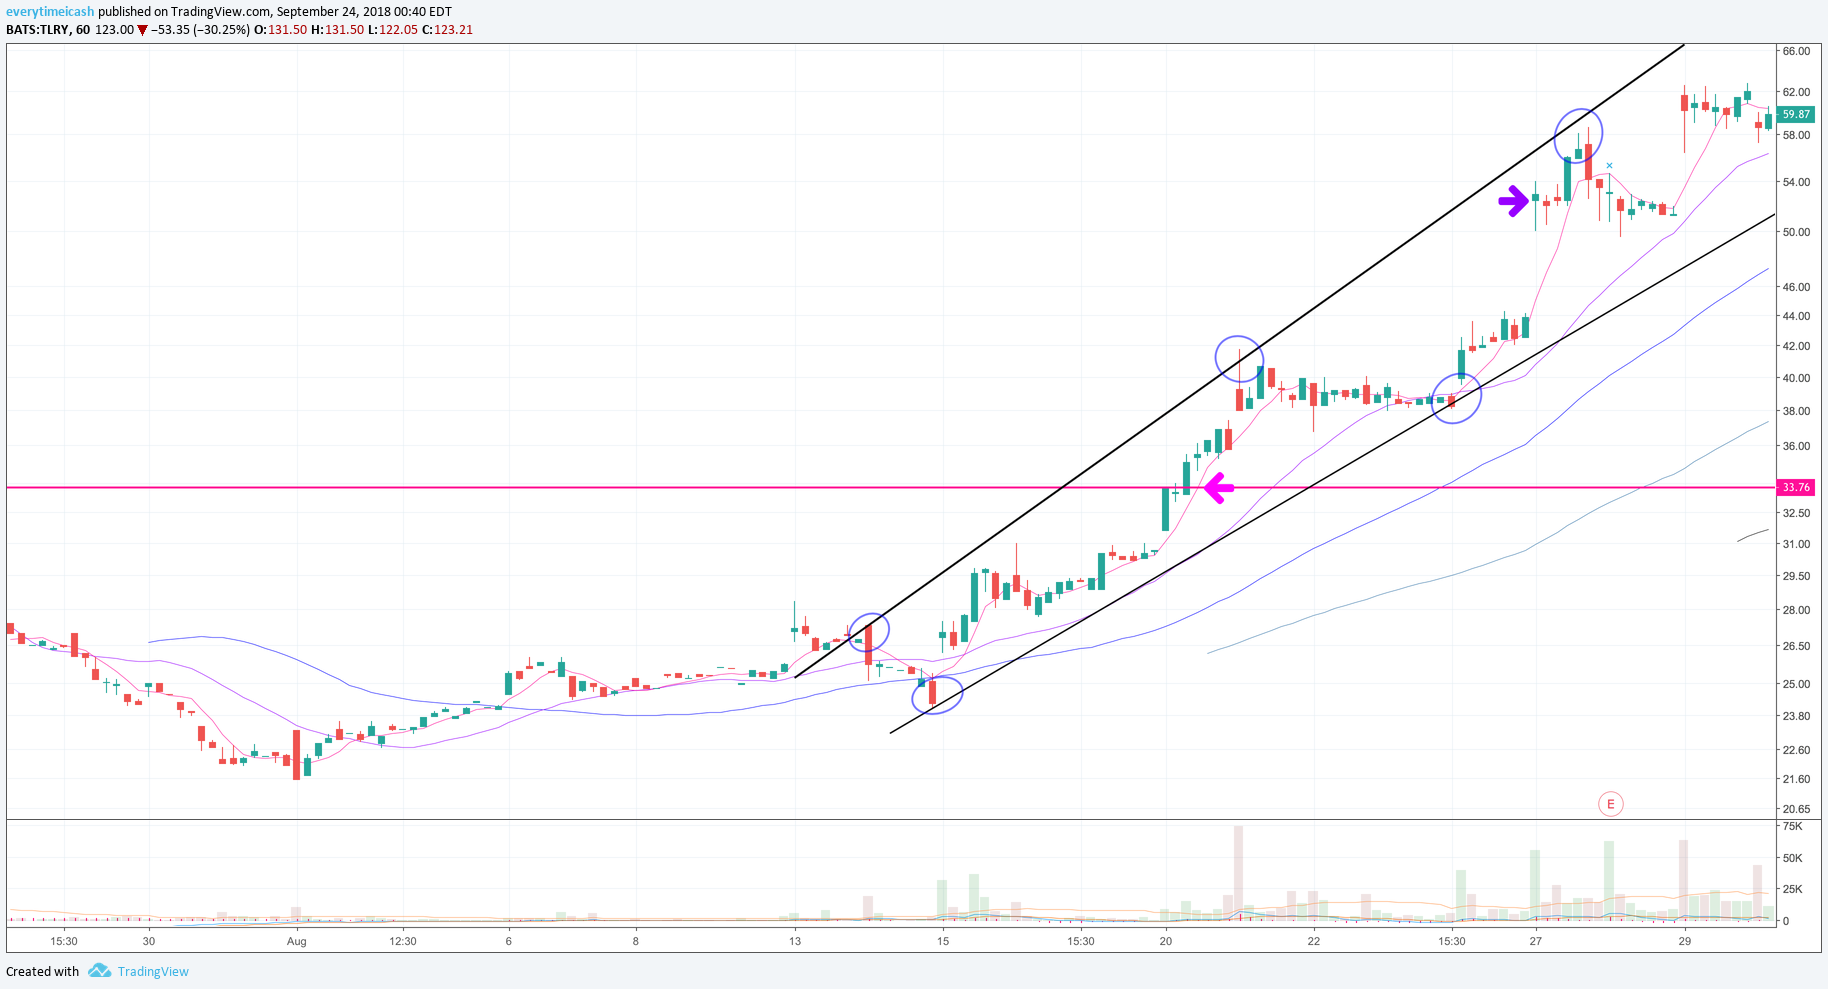 TLRY 45 Target Reached Highlighted by Purple Arrow